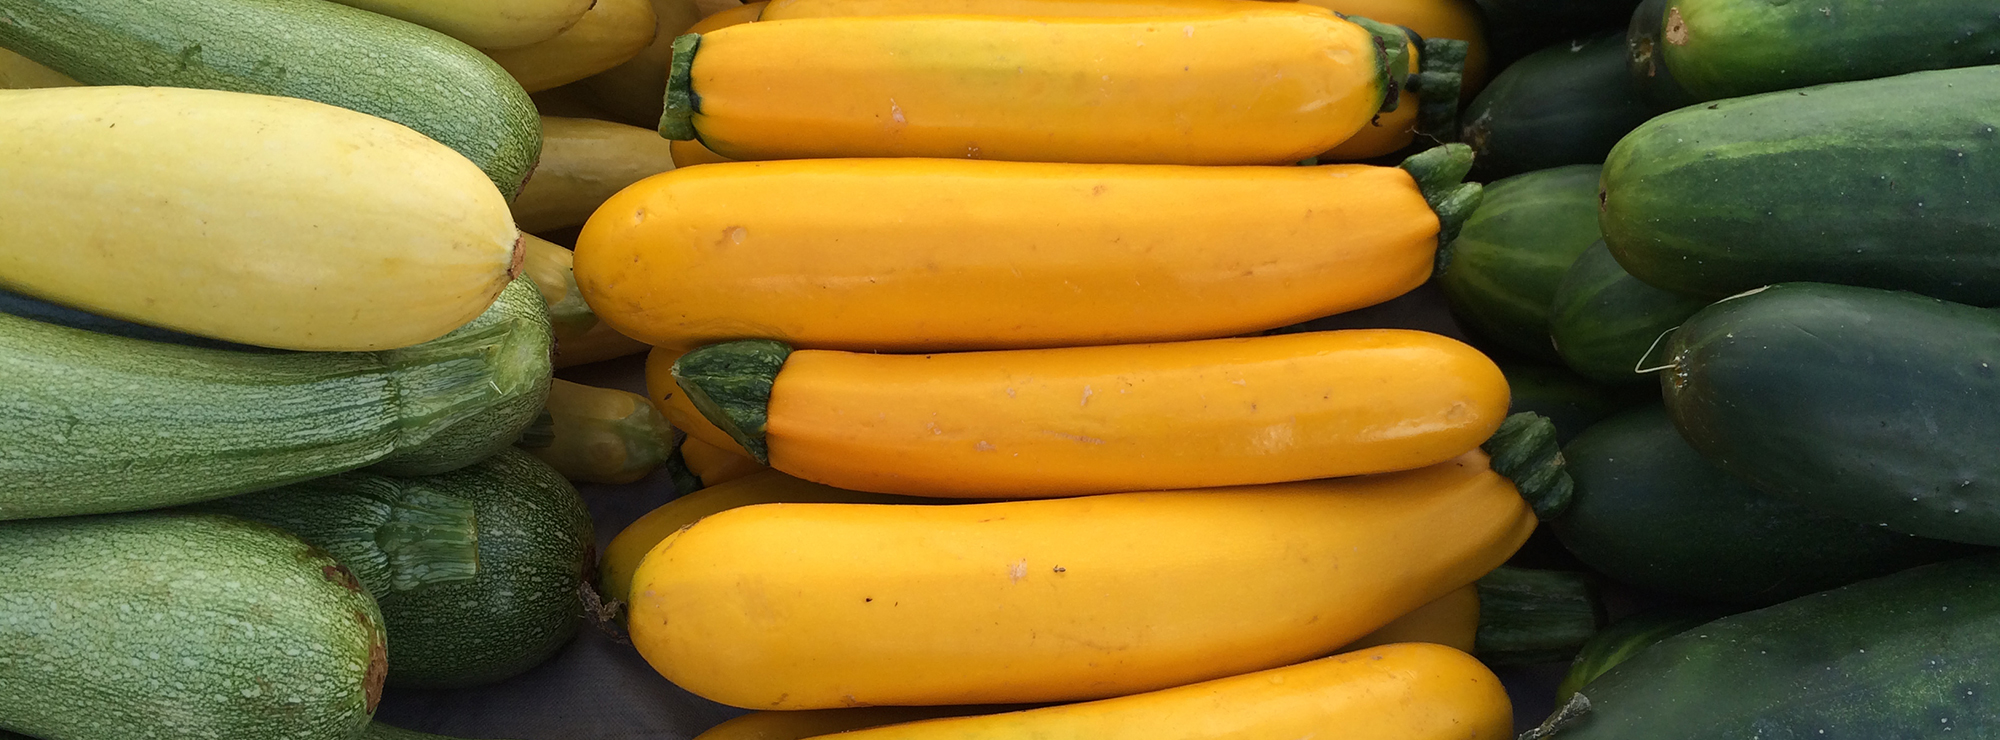 Fresh squash at the market